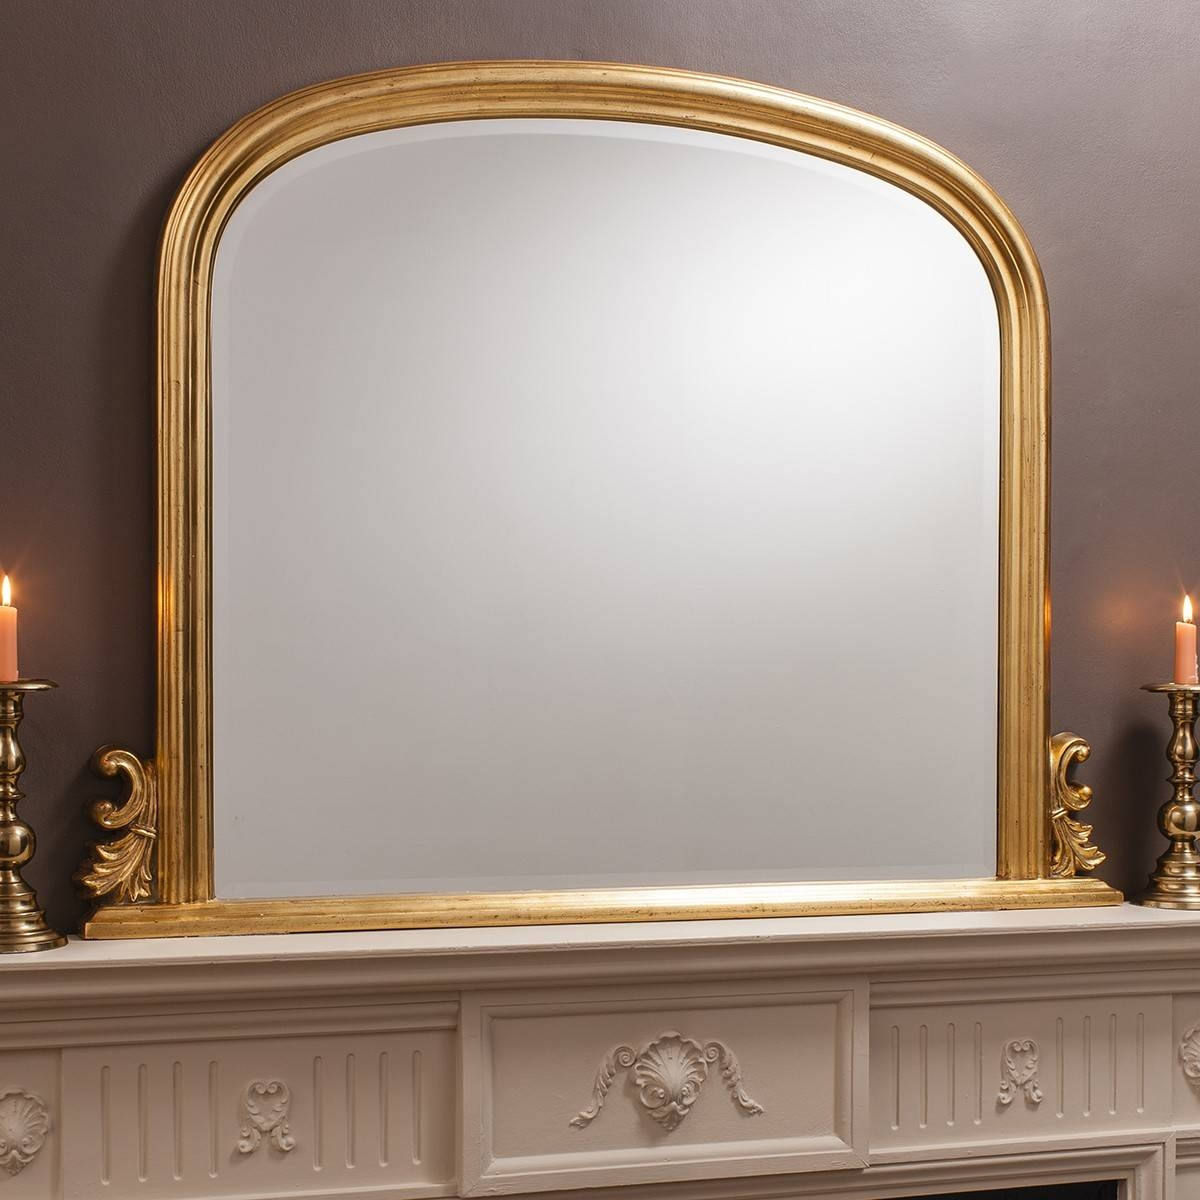 Grace Overmantle Mirror From £249 - Luxury Overmantle Mirrors with Over Mantel Mirrors (Image 5 of 15)